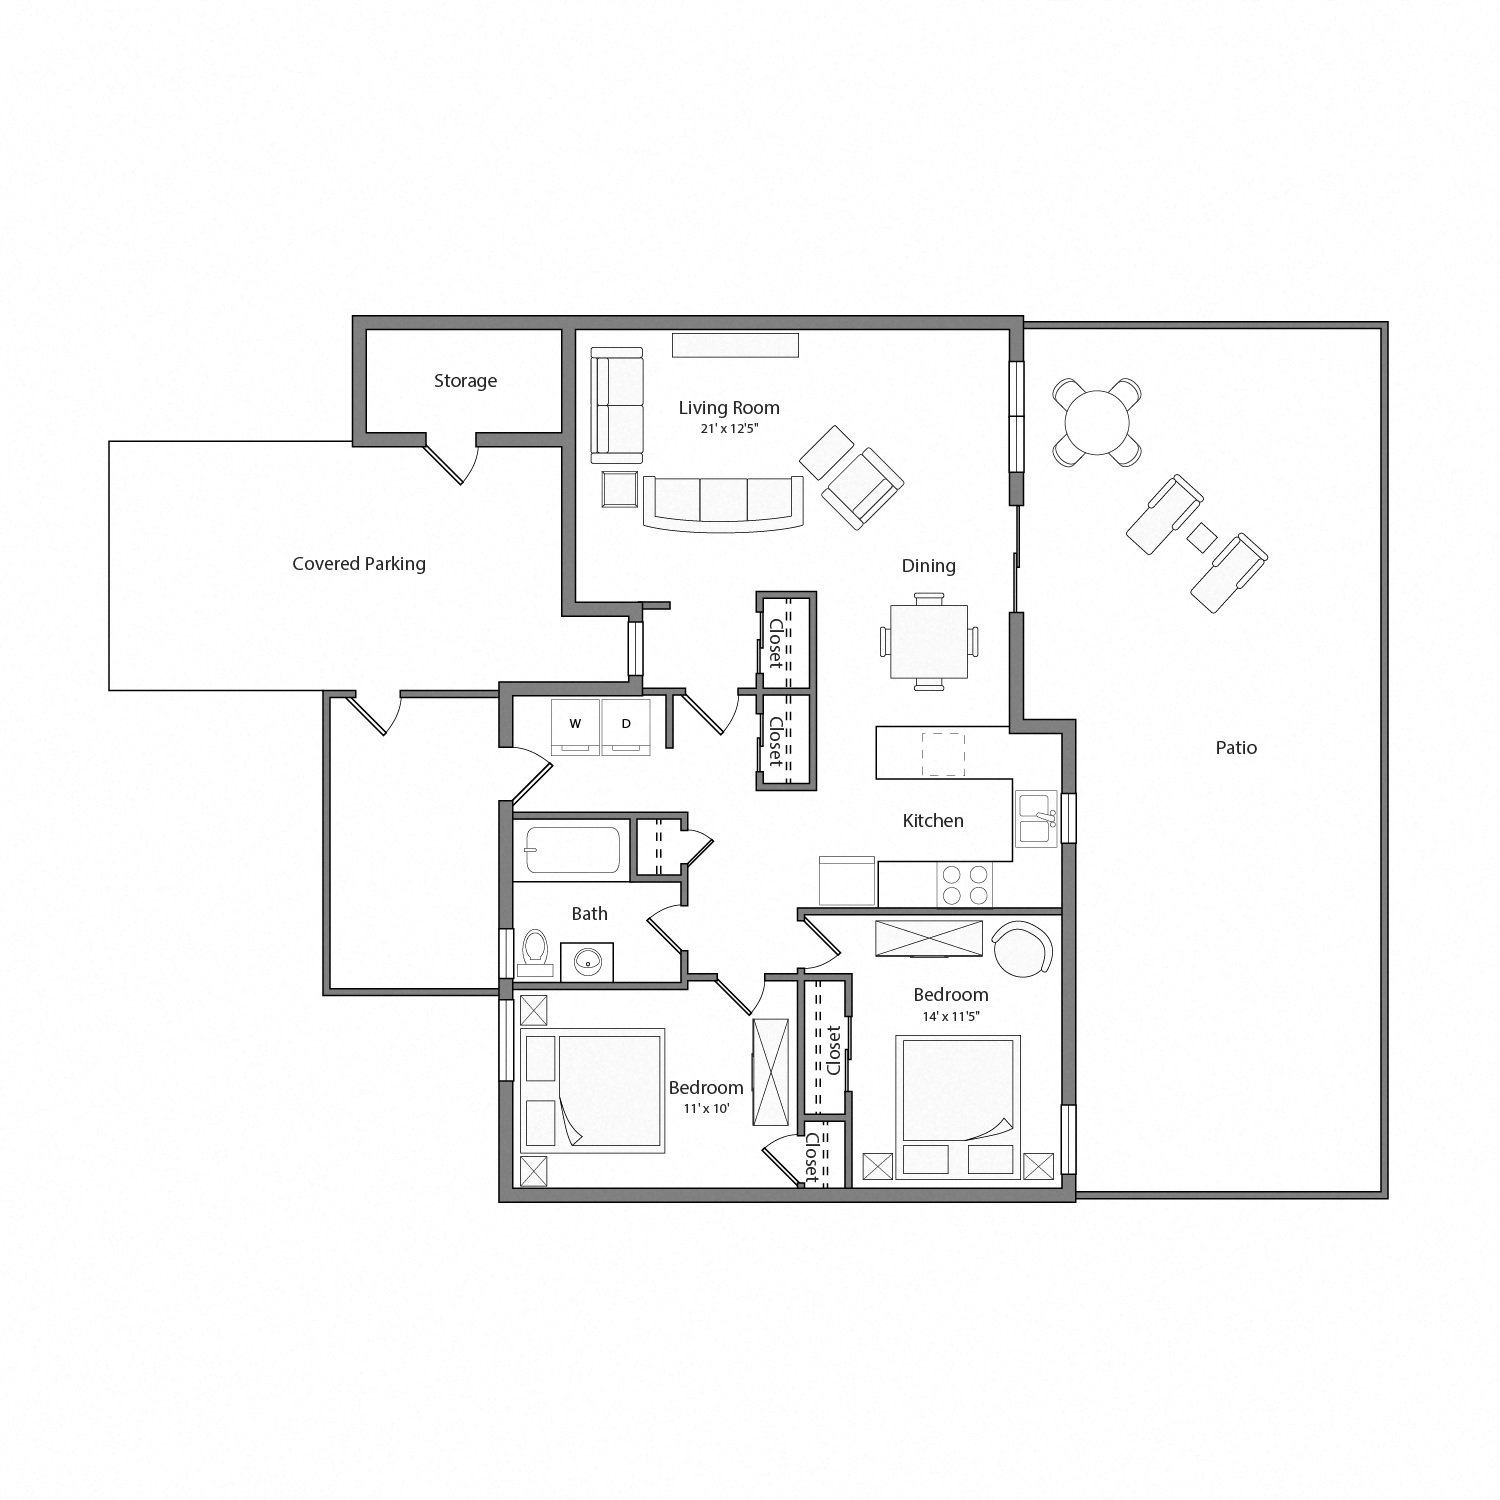 Cypress Renovated house floor plan diagram. Two bedrooms, one bathroom, an open kitchen, living and dining area with doors to a large patio, a laundry nook, and a covered parking area.